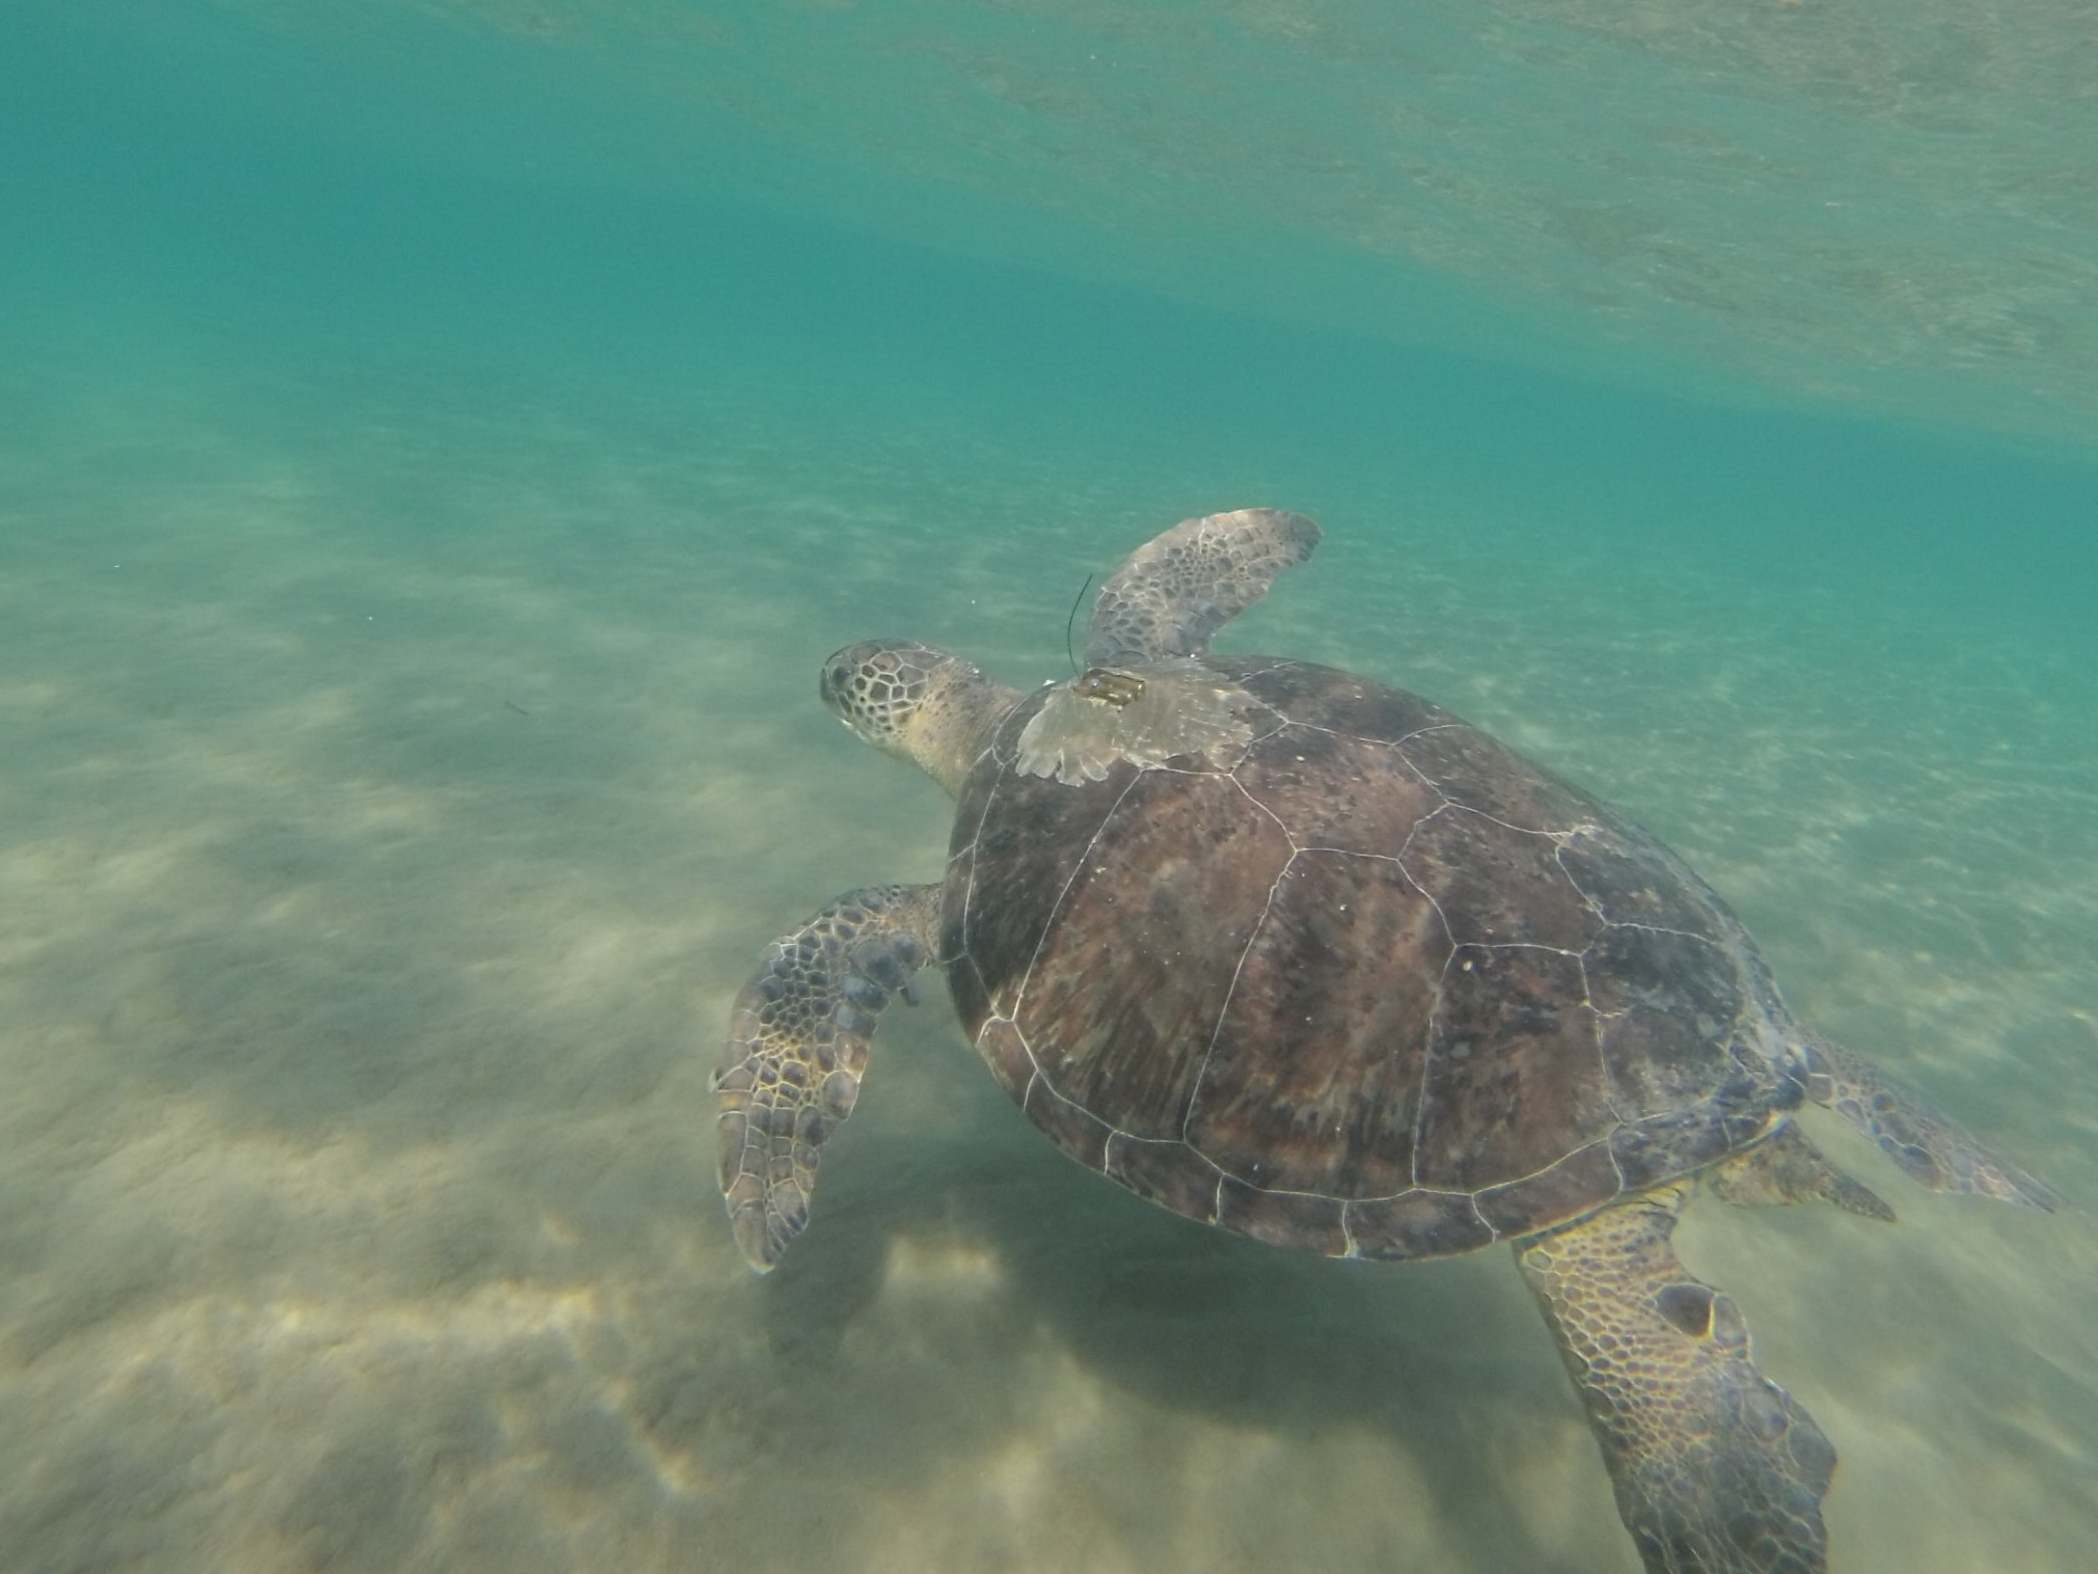 Turtles more likely to eat plastics that look like foods in their natural diet, study finds